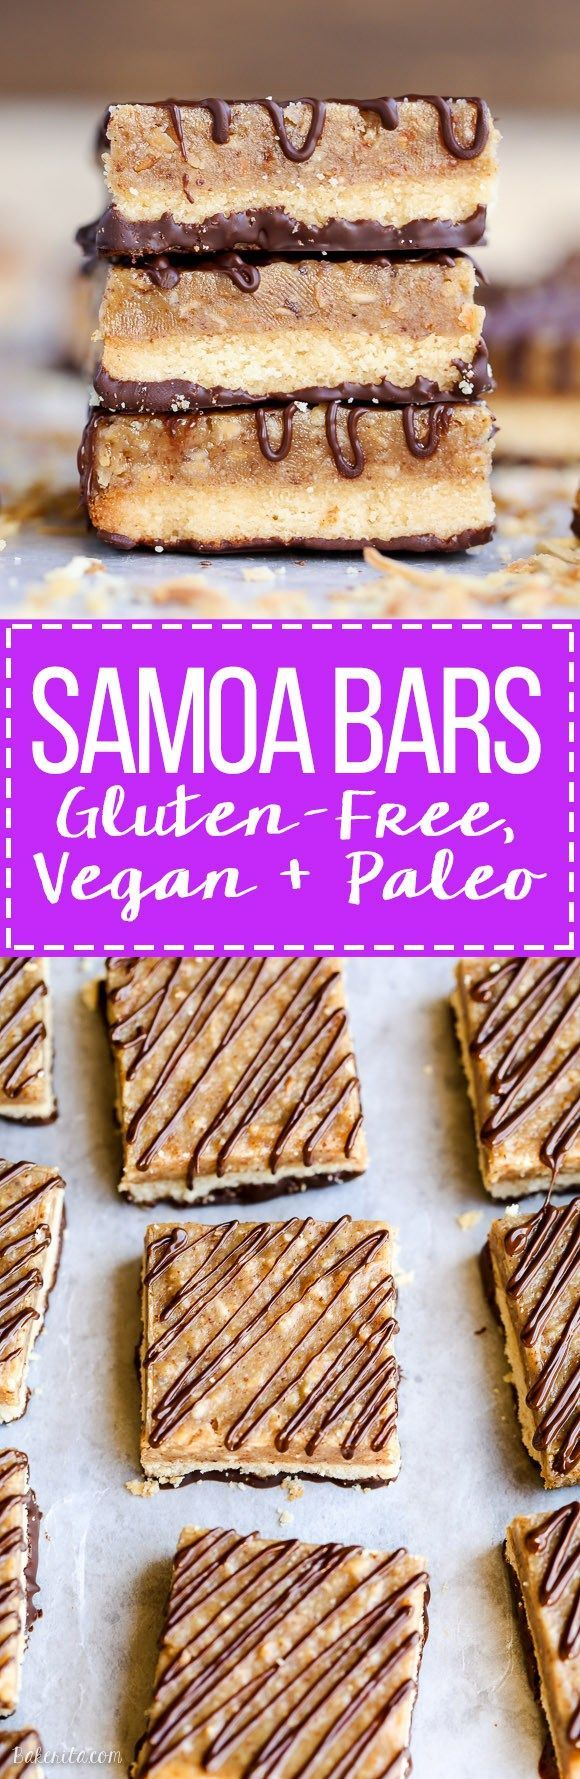 These Samoa Bars have a shortbread crust, a layer of toasted coconut caramel, and a dark chocolate drizzle! Yum!